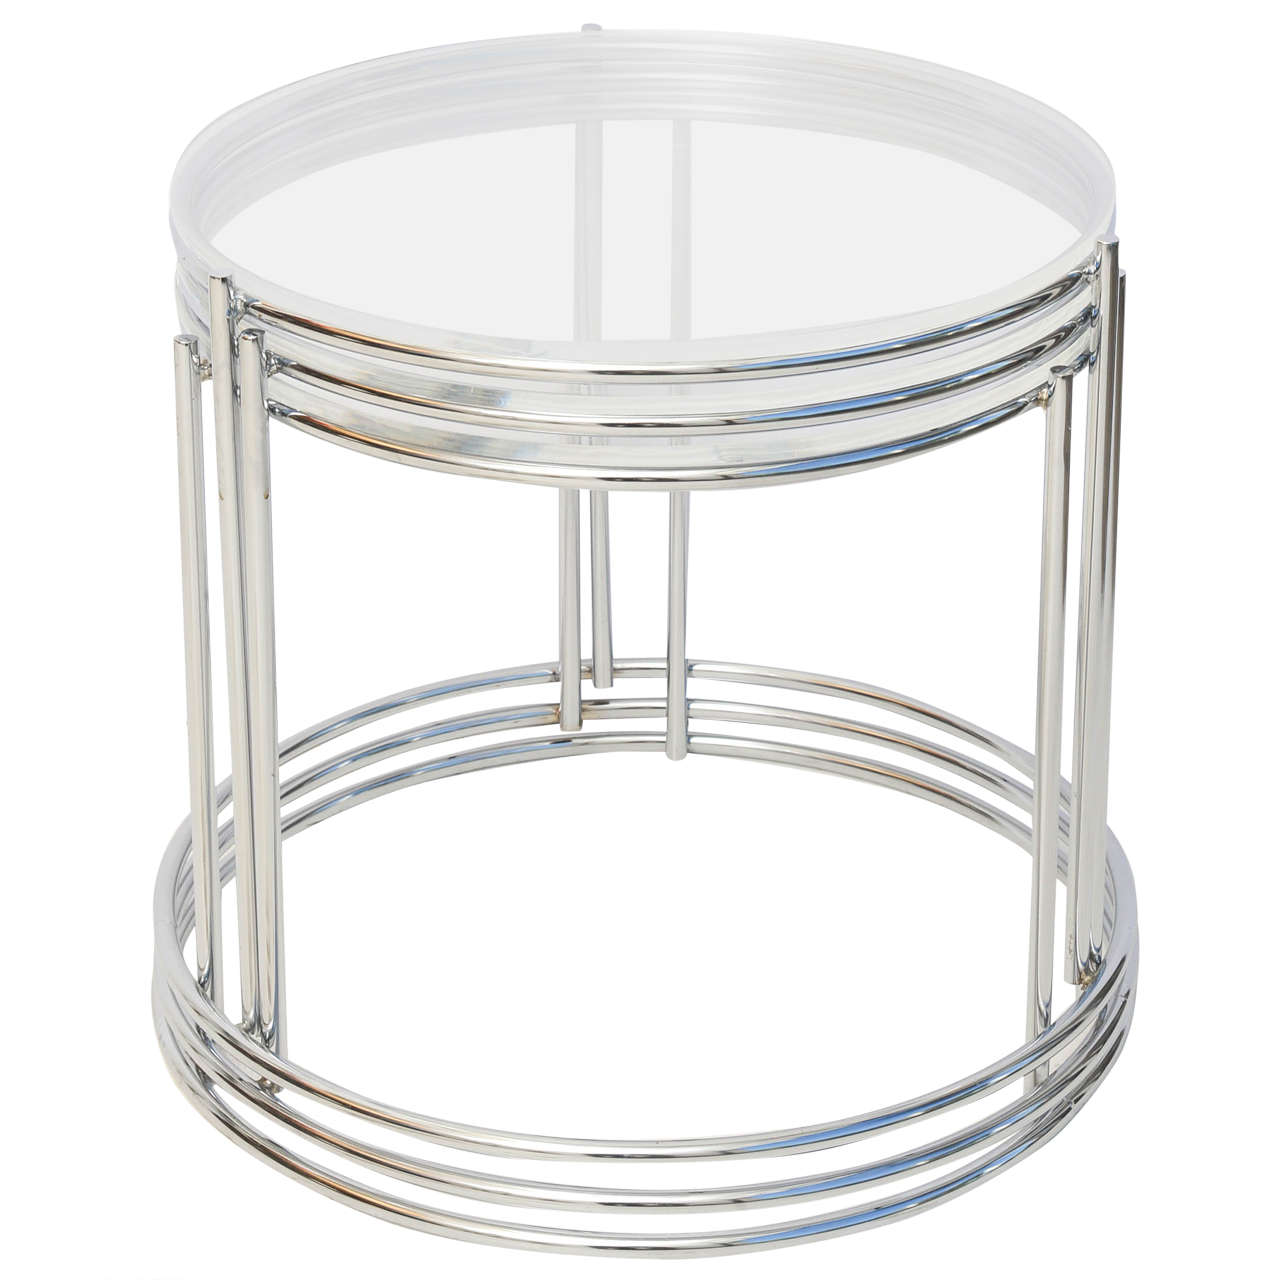 Set of Three Drum Shaped Nesting Tables 2